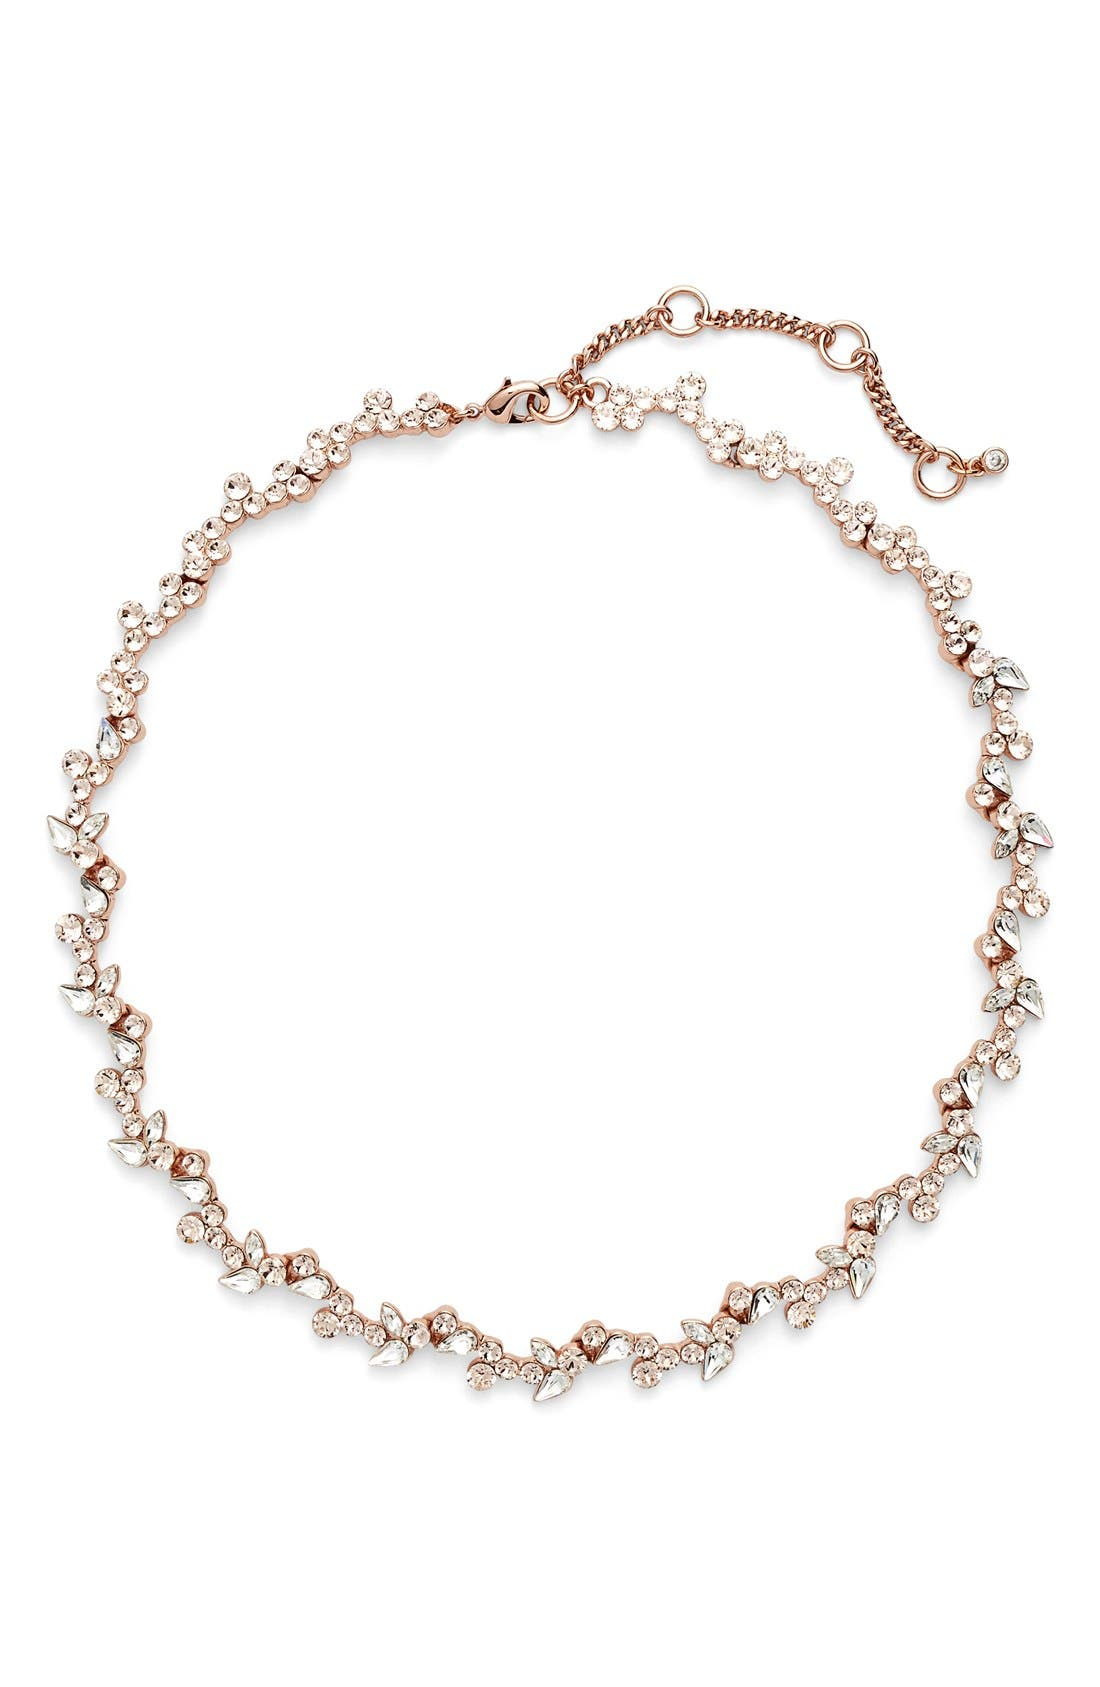 Main Image - Givnechy Floral Crystal Collar Necklace